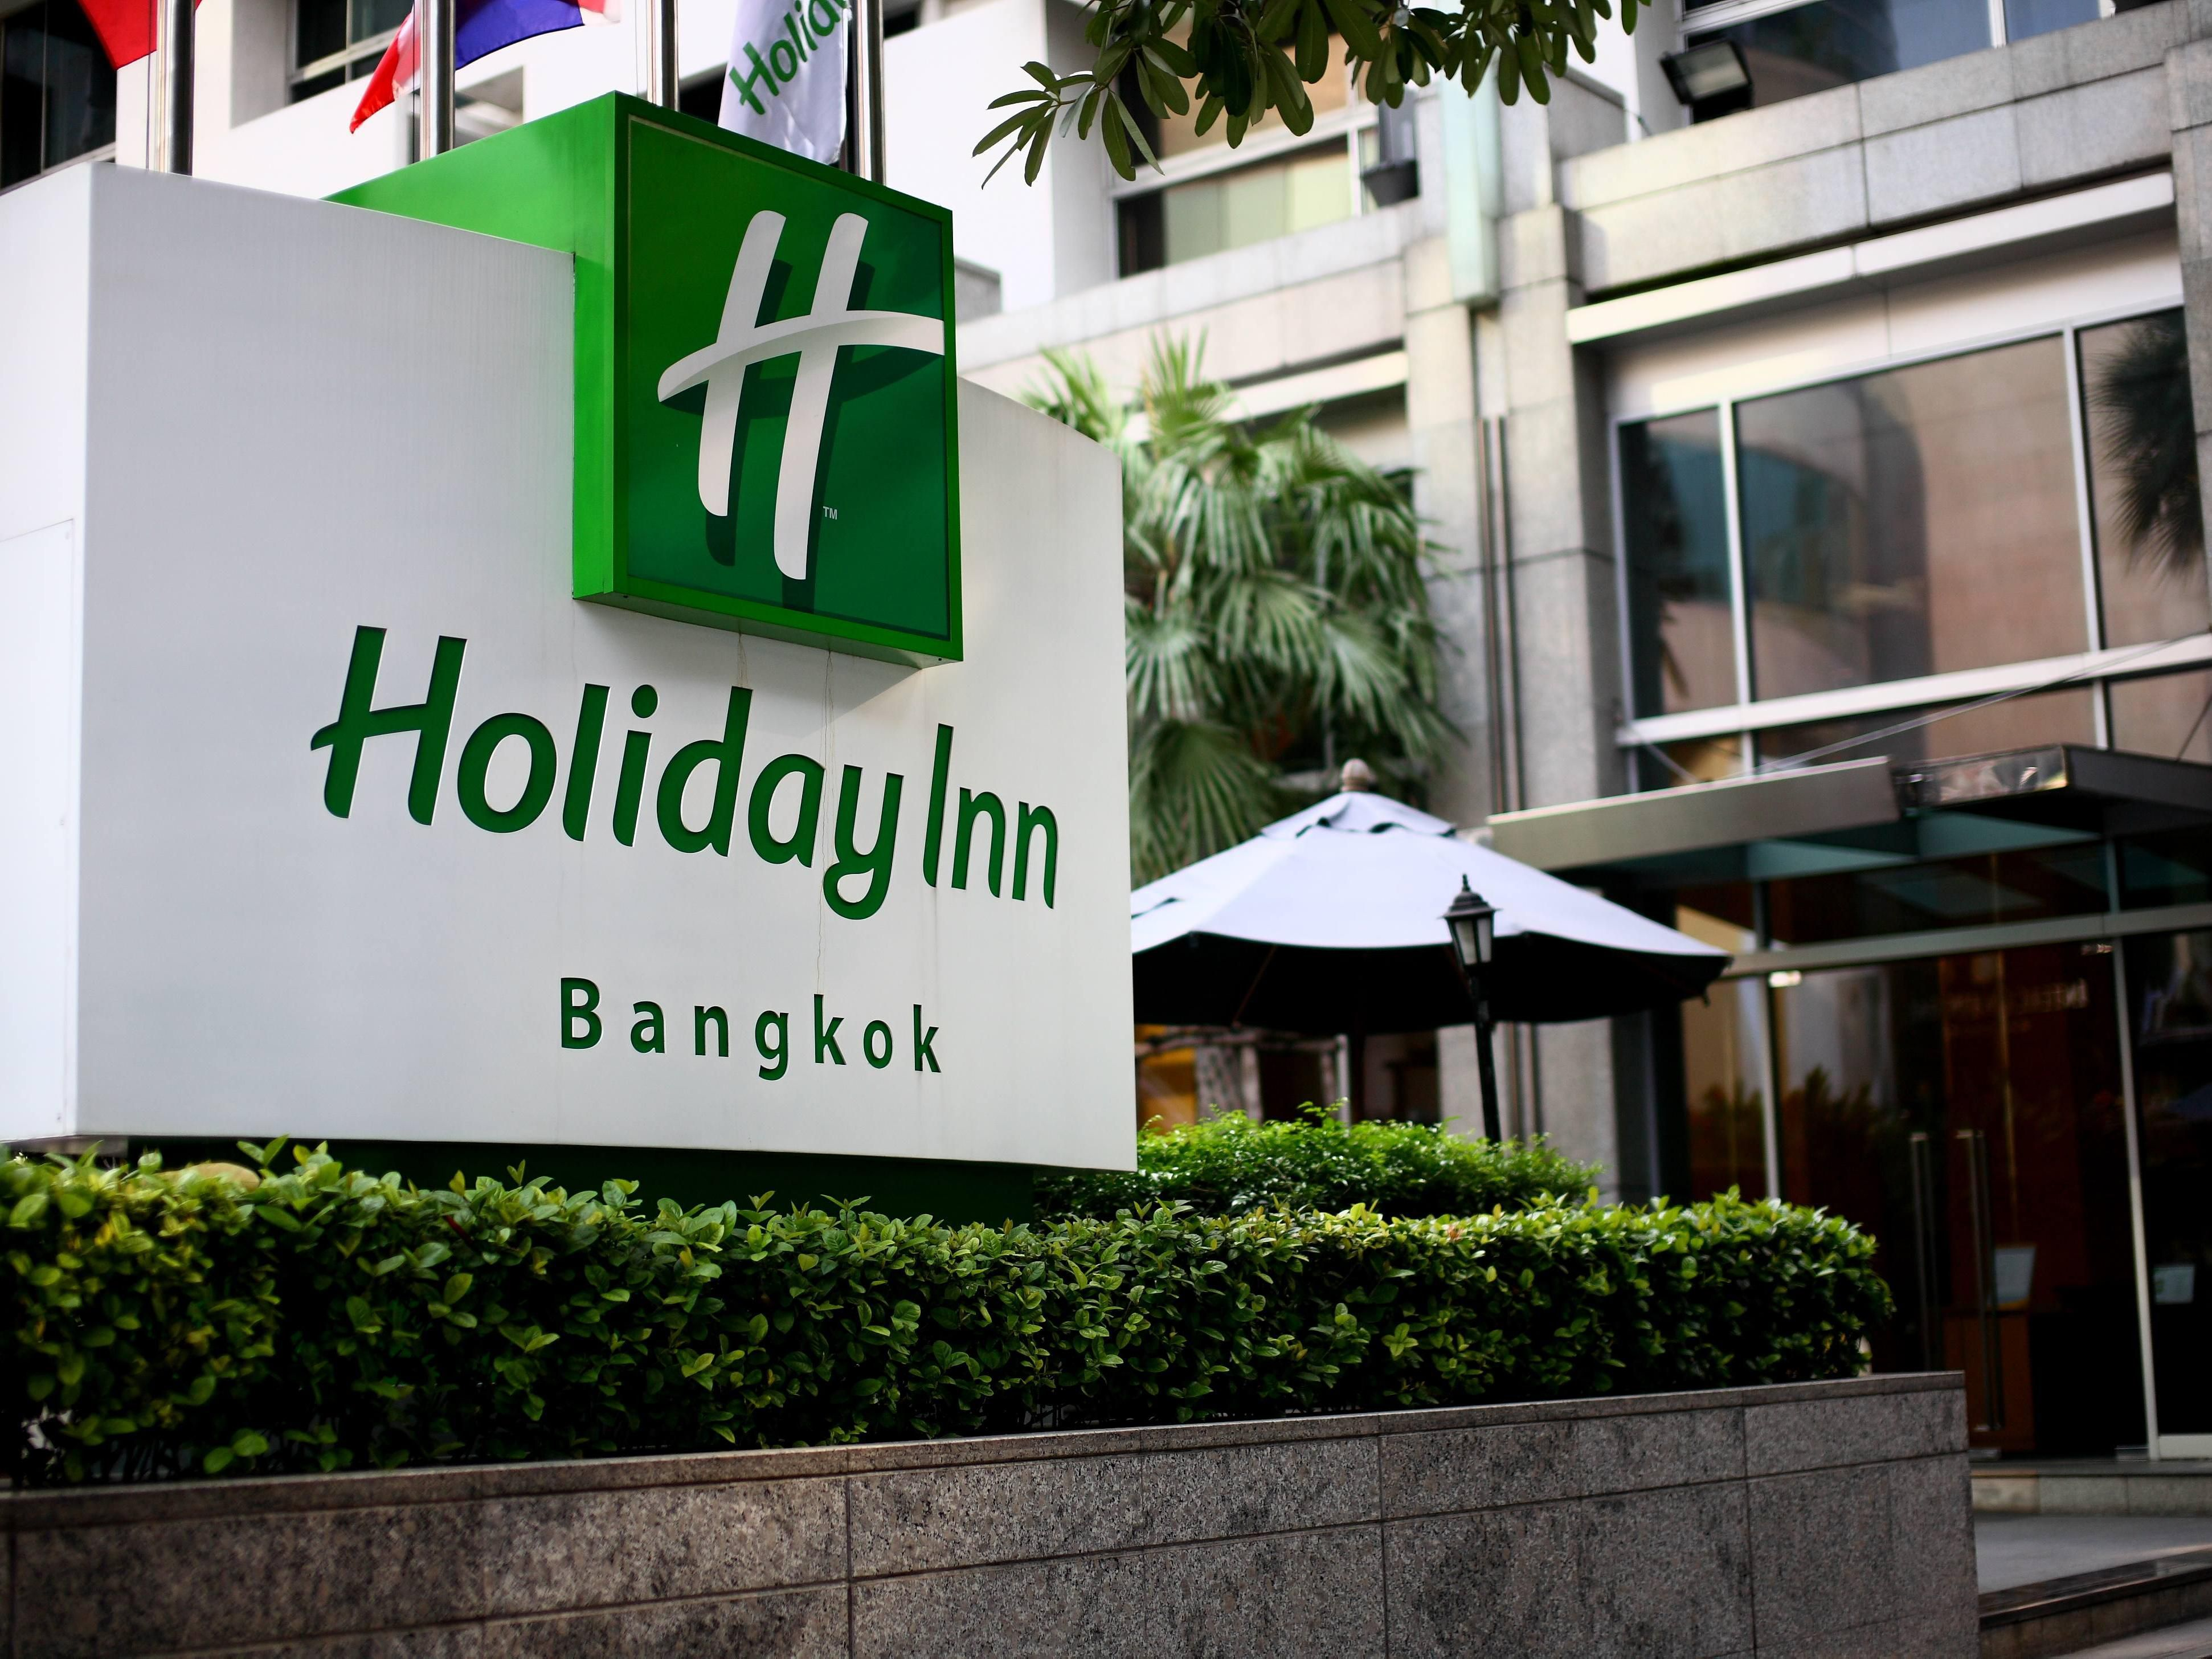 Holiday Inn Bangkok - Entrance